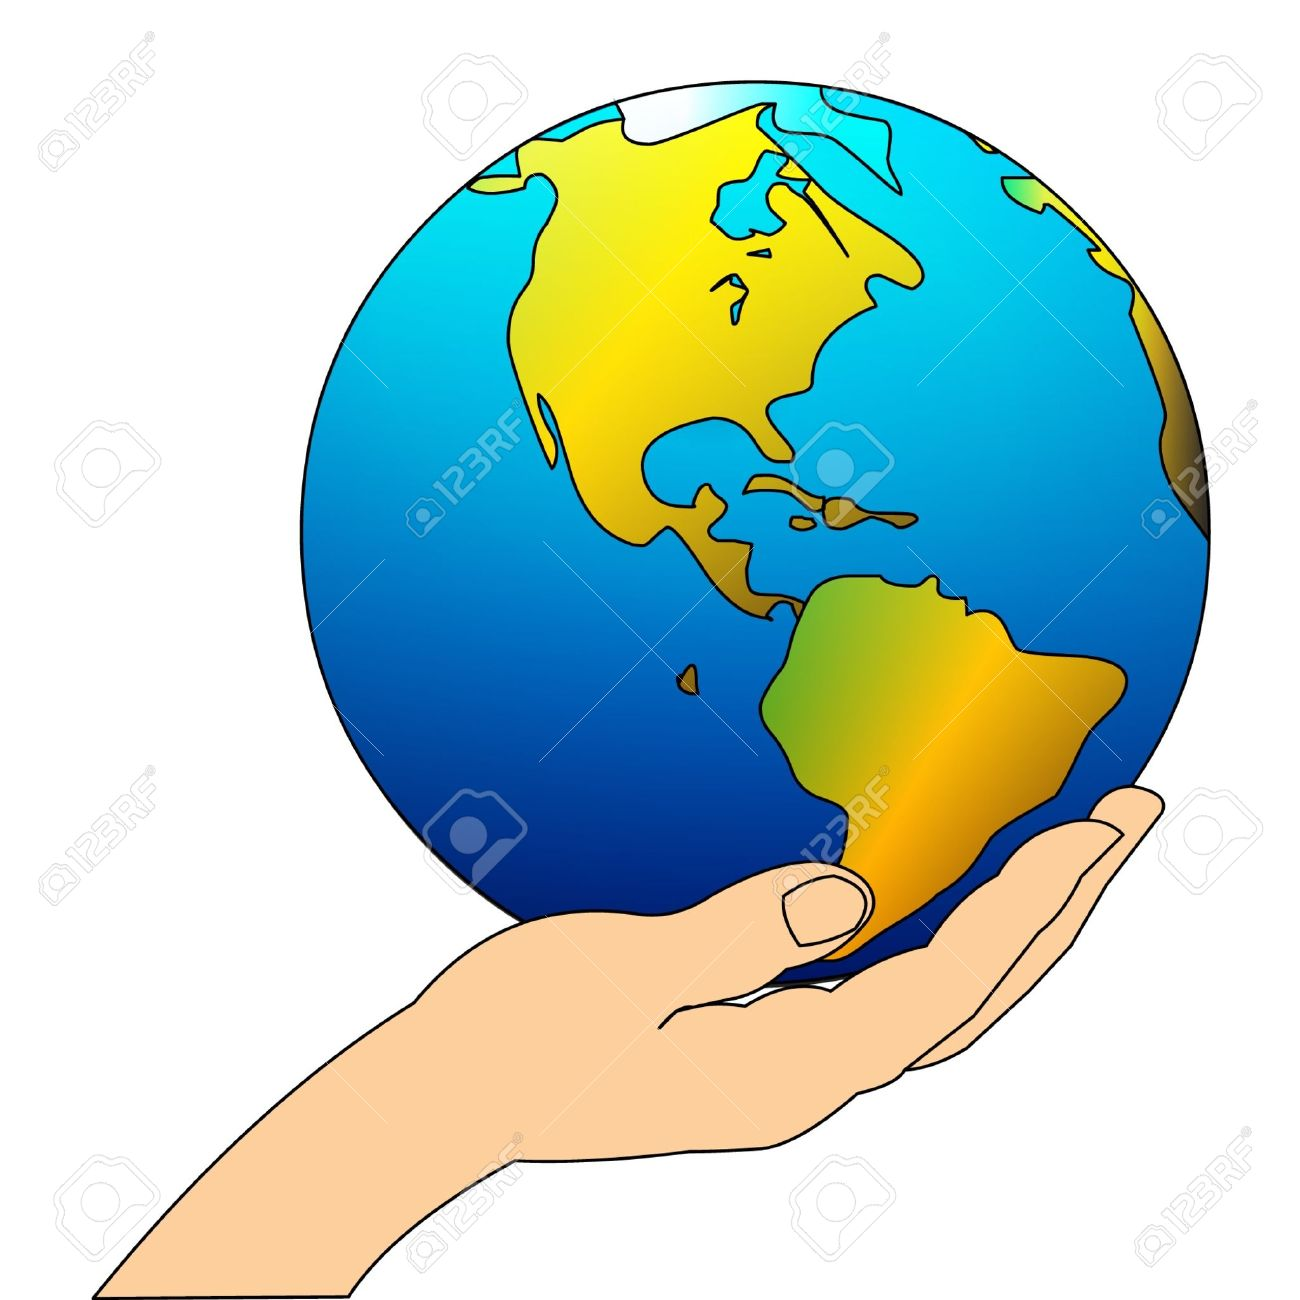 Hands holding earth clipart freeuse Hand Holding Earth Drawing | Free download best Hand Holding Earth ... freeuse